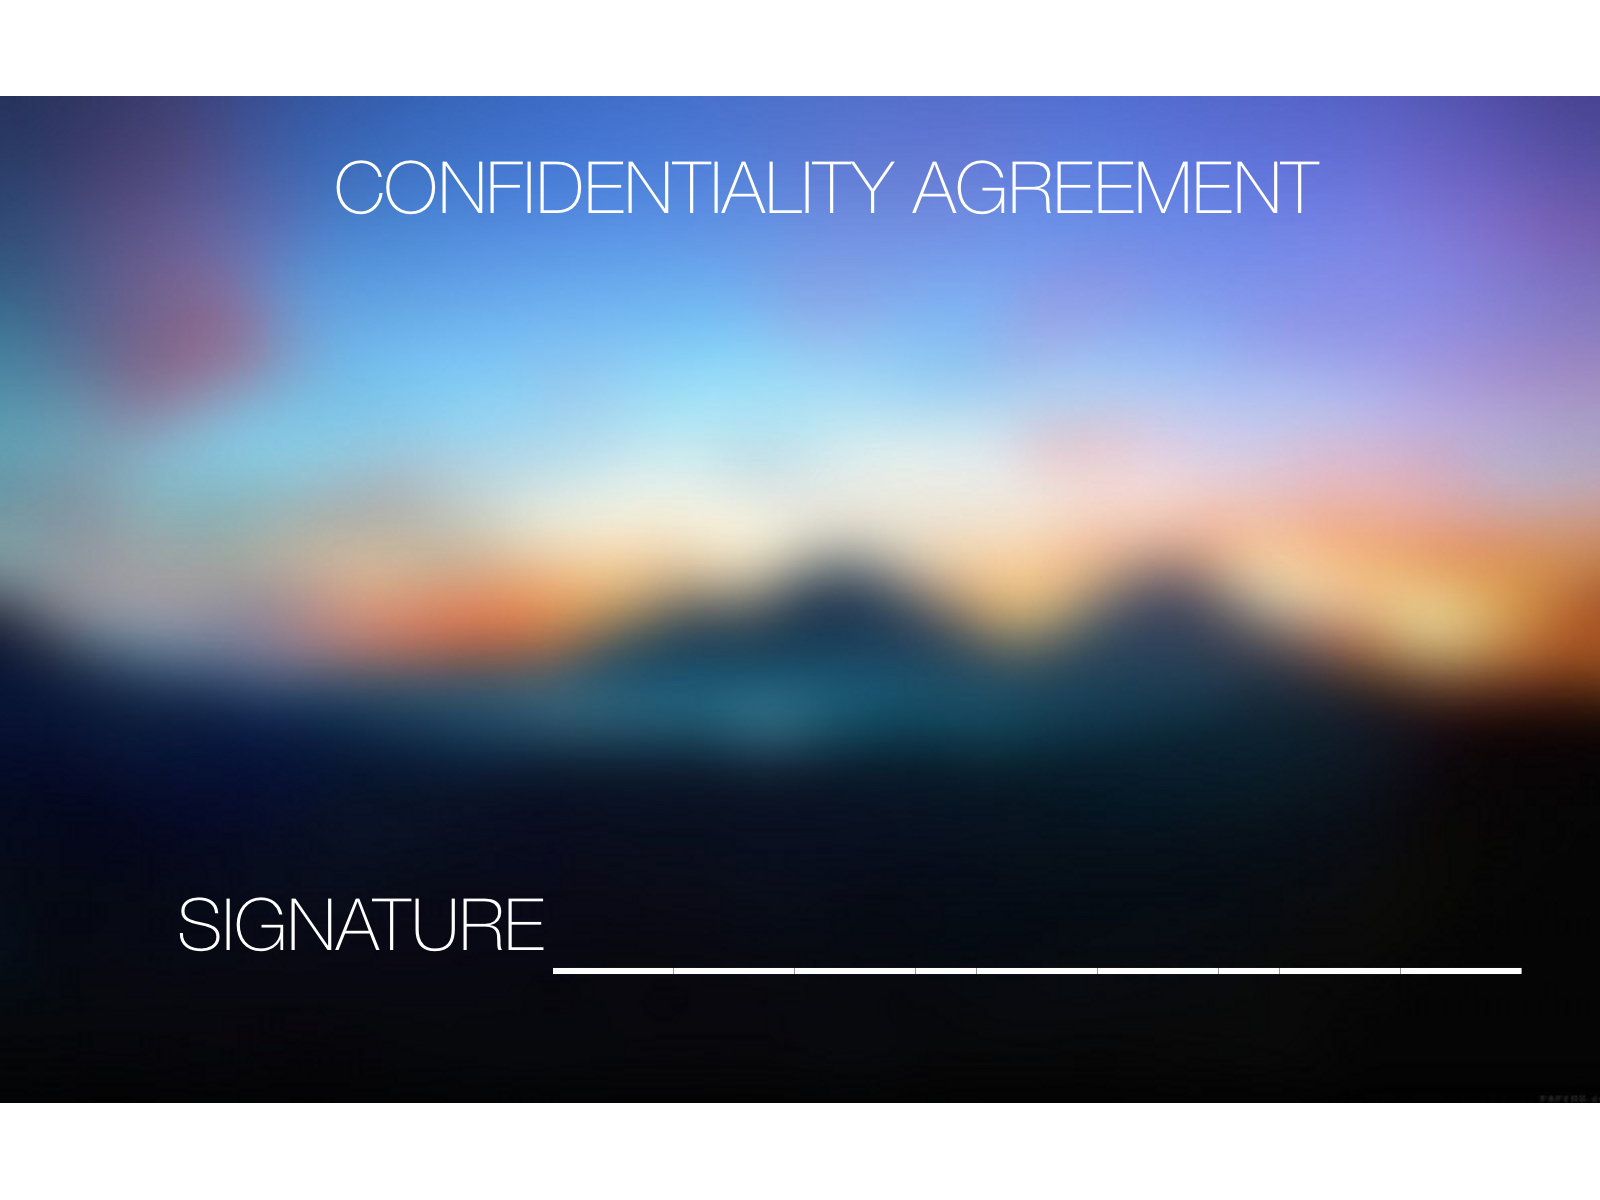 Confidentiality Agreement.jpg